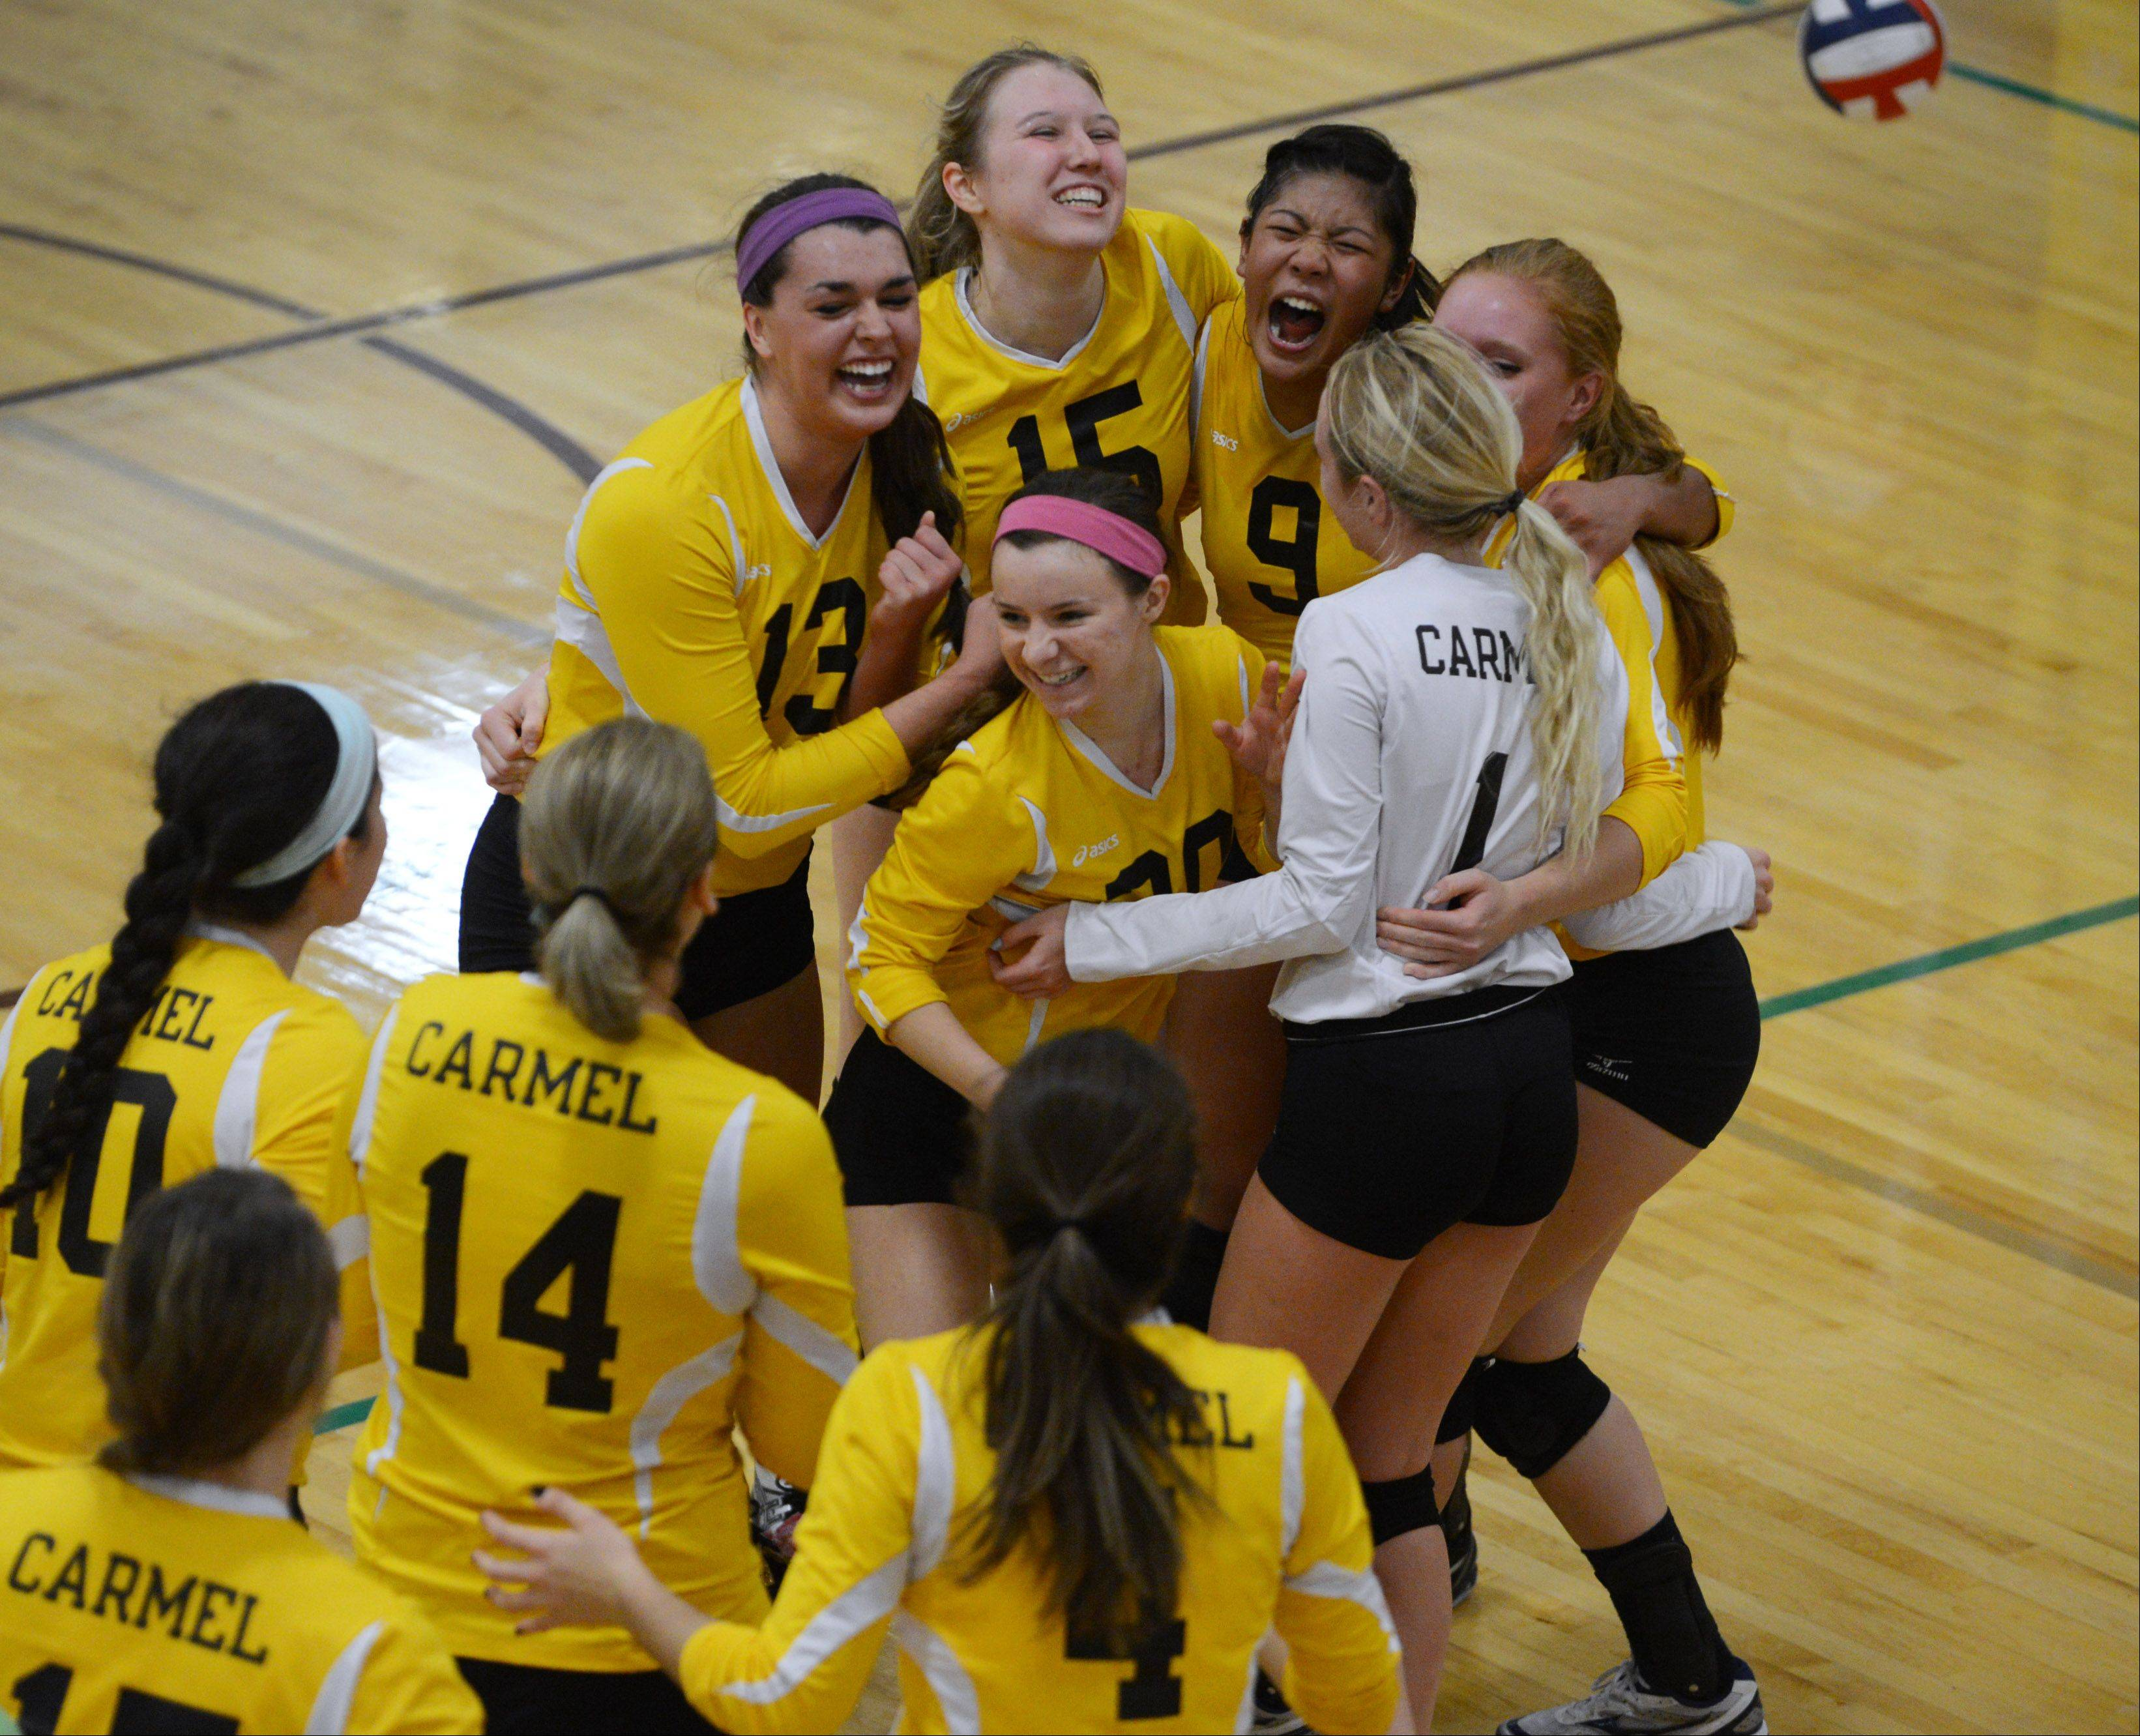 Carmel players celebrate their Class 4A regional final win over Glenbrook South on Thursday in Mundelein.